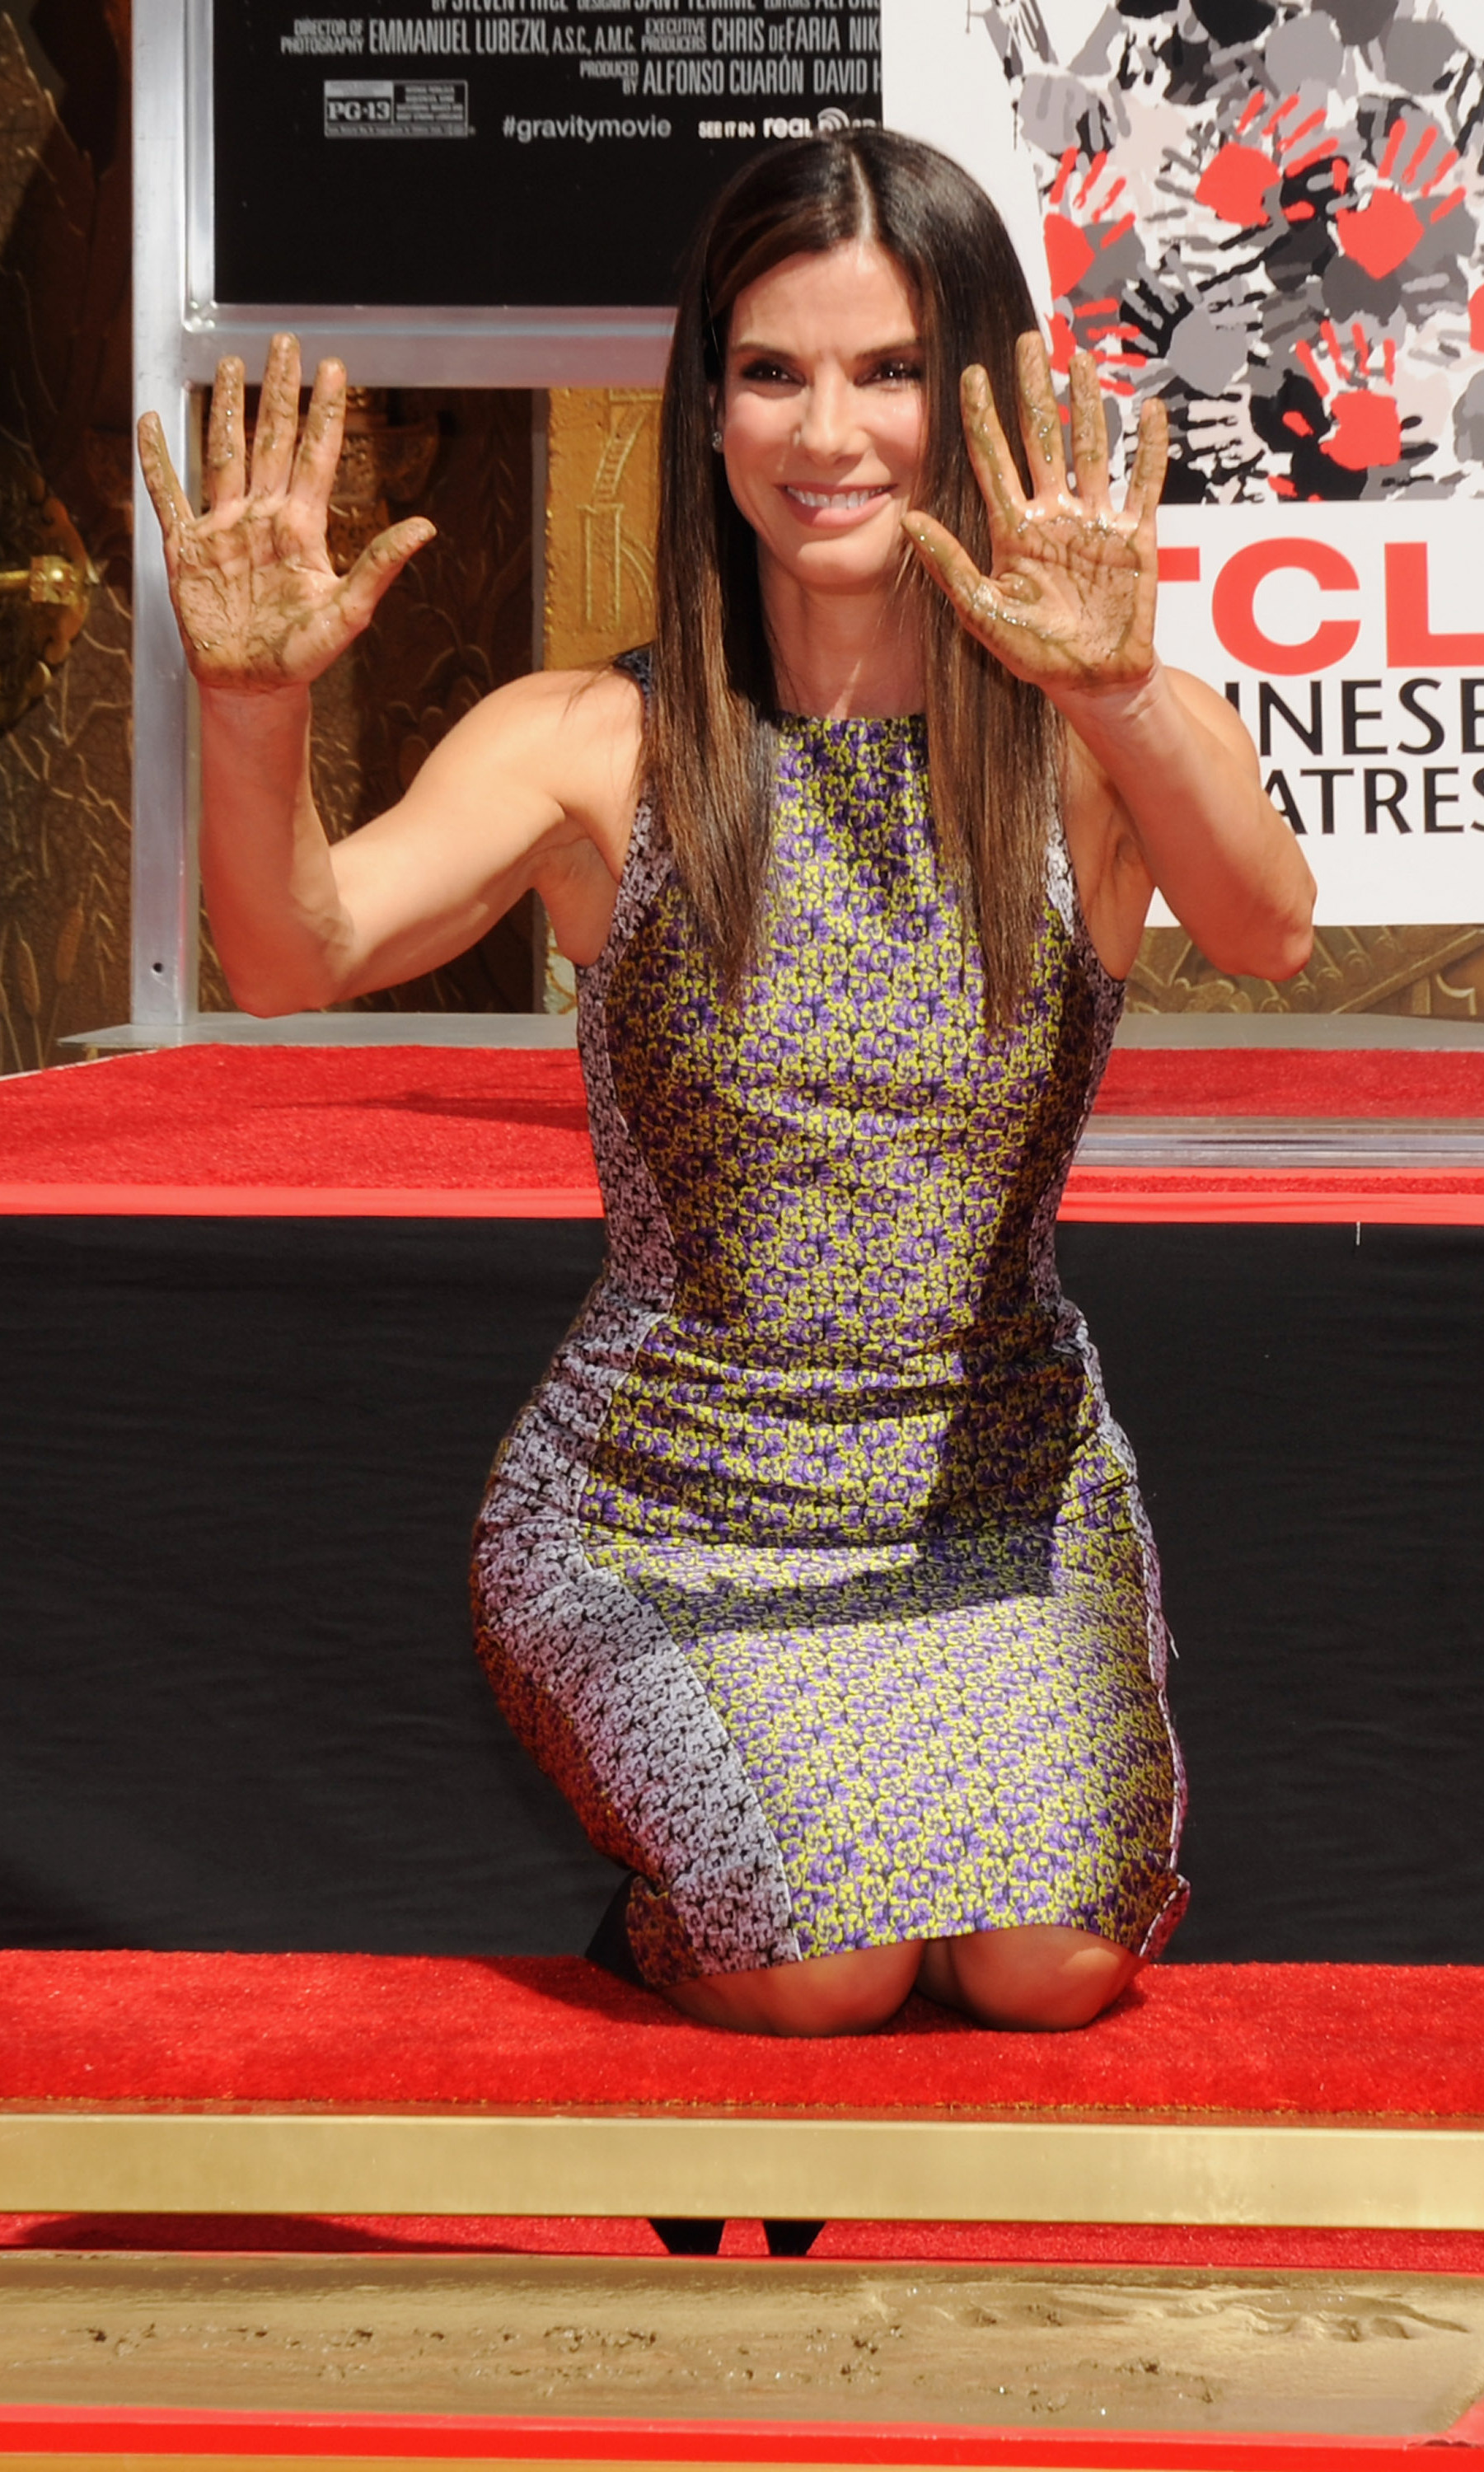 Gravity star Sandra Bullock gets down and dirty digging her hands into a plaque on the Hollywood Walk of Fame at the TCL Chinese Theatre.